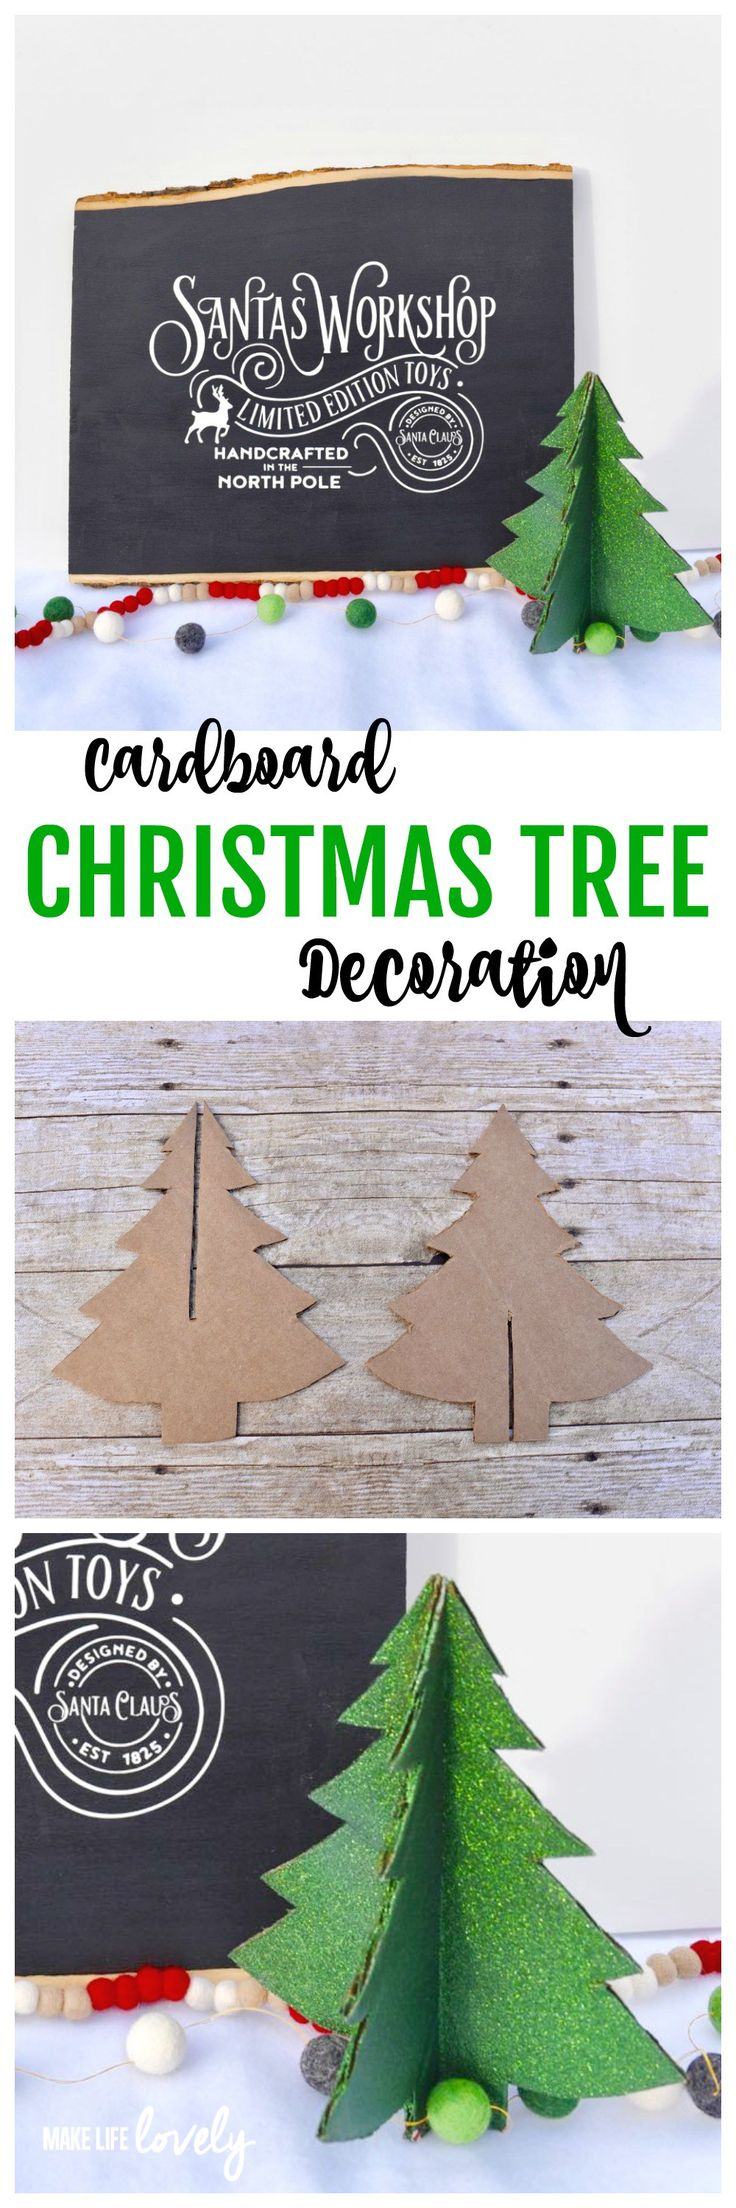 Cardboard Christmas tree decoration. Make this darling Christmas tree from a cardboard box! It's a great way to recycle and is a fun Christmas craft. #nothinglikeahug #ad